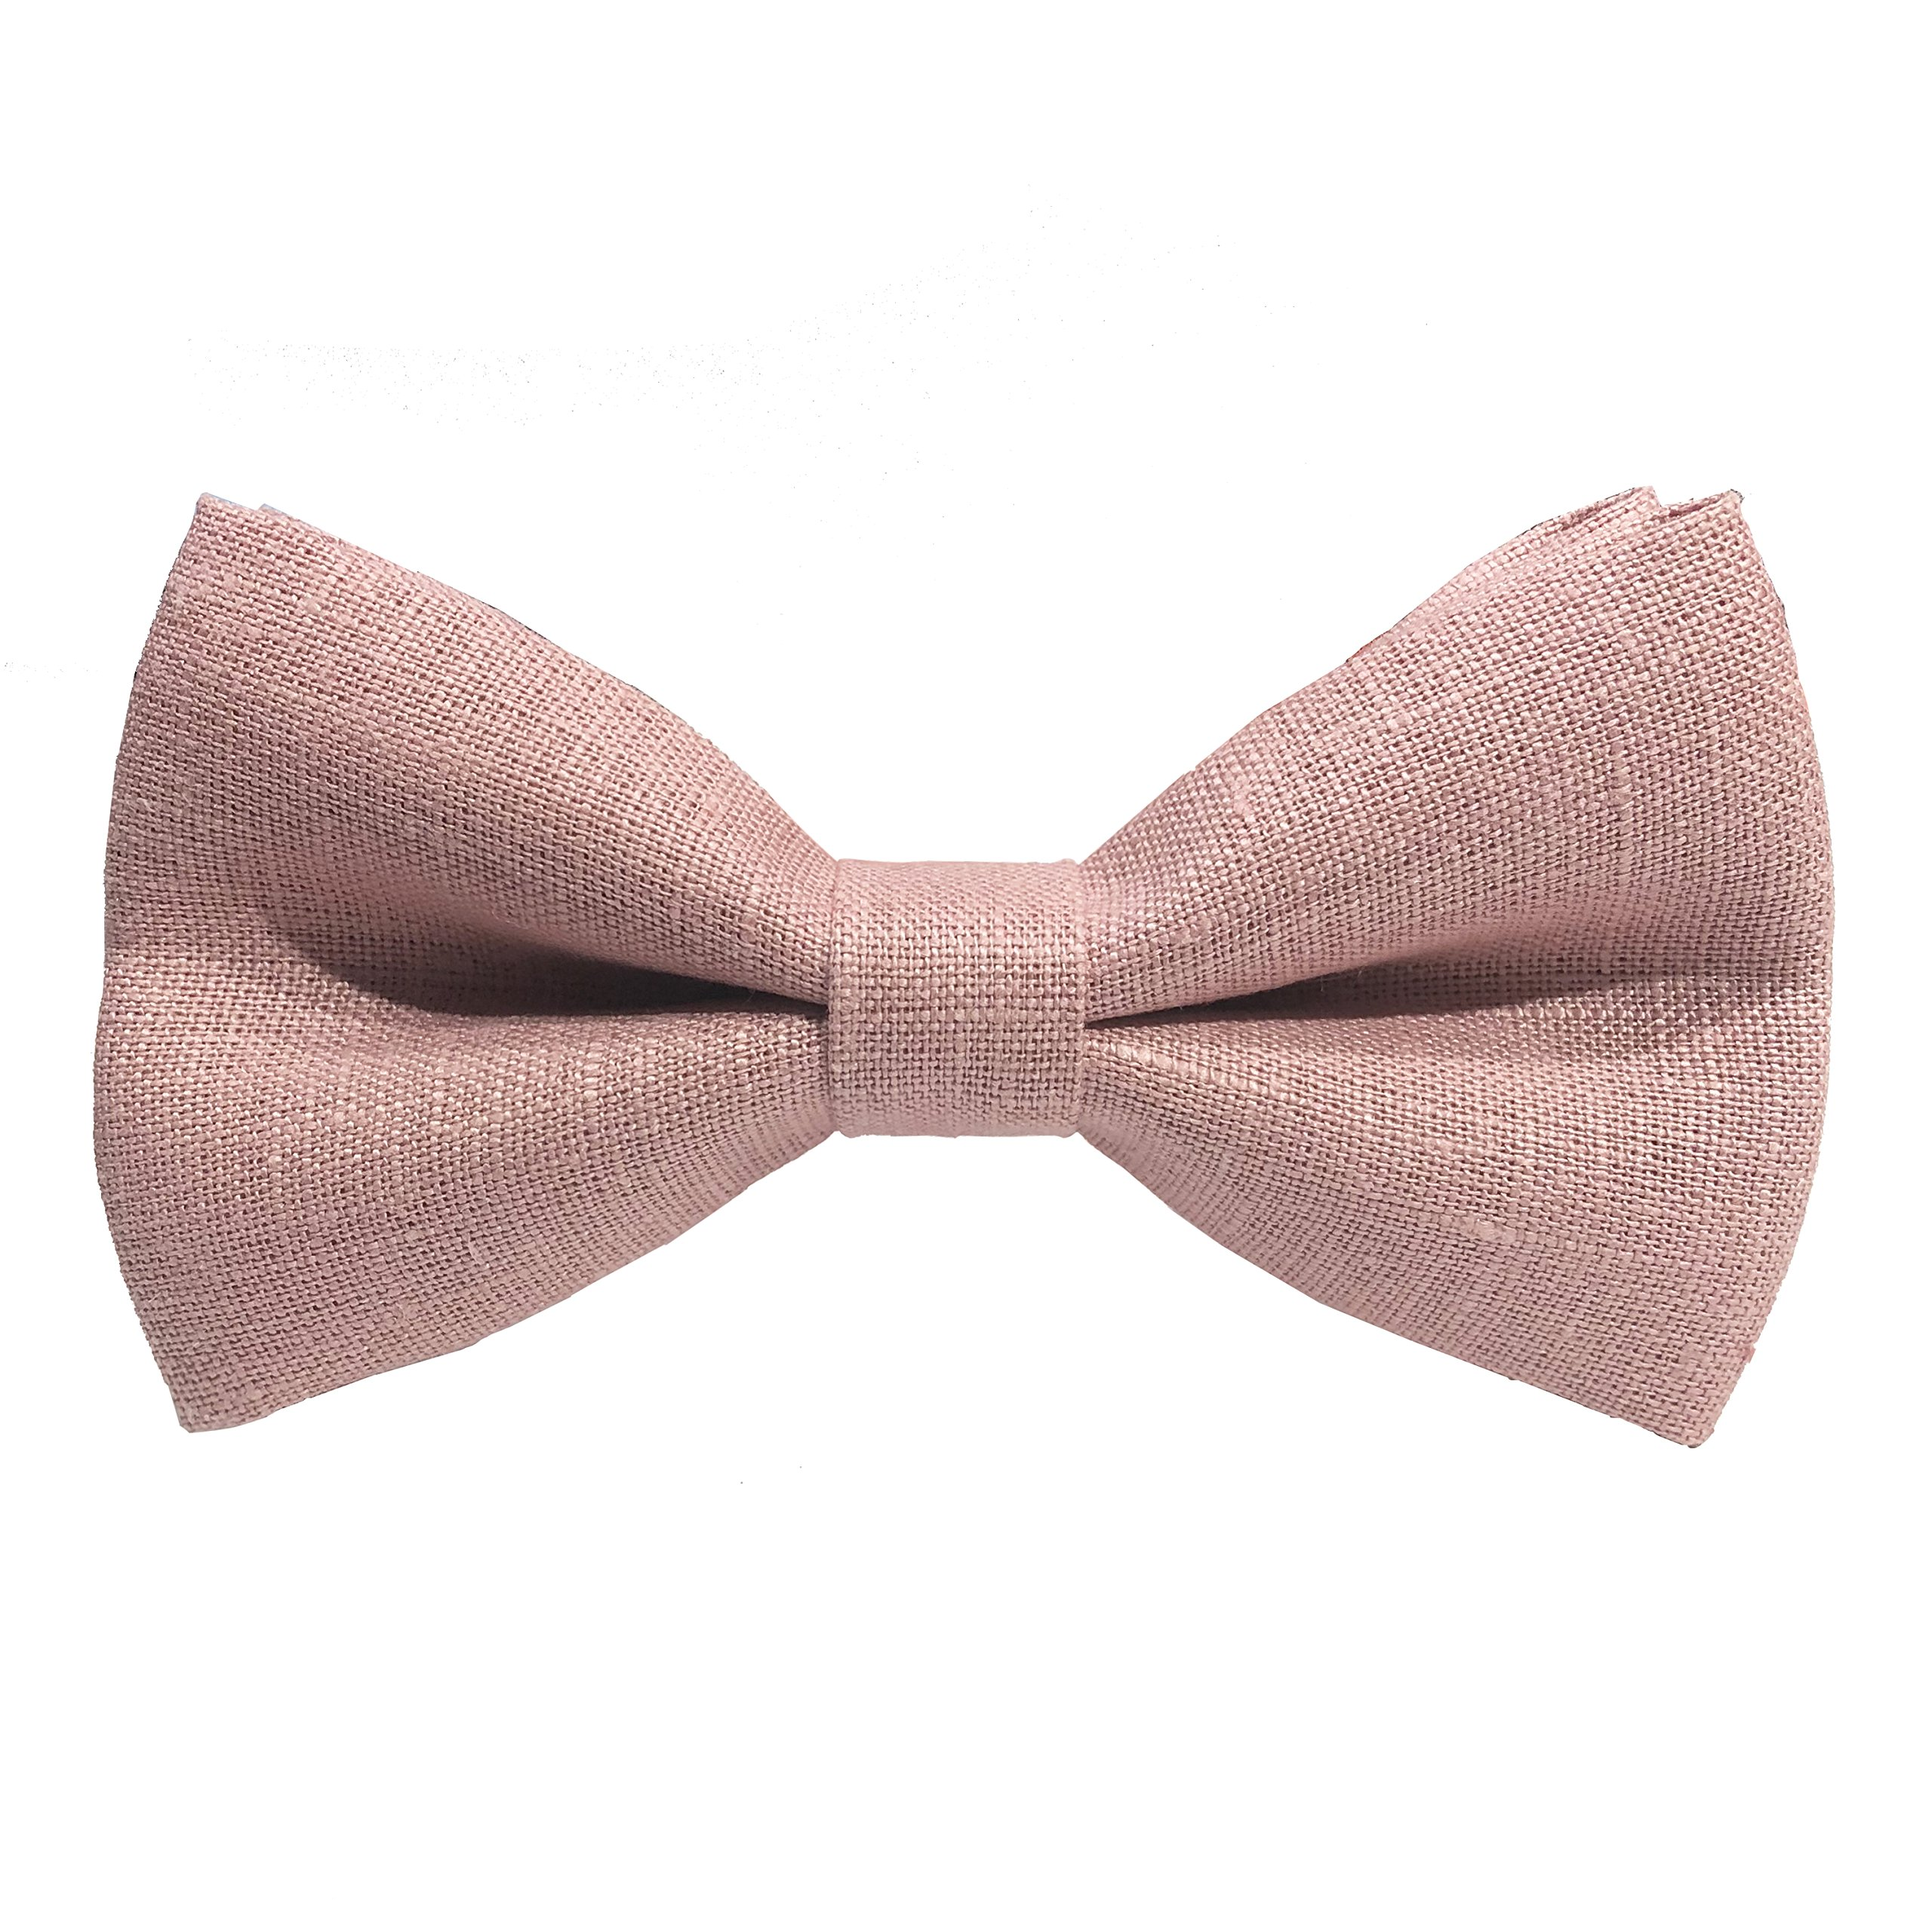 Linen Classic Pre-Tied Bow Tie Formal Solid Tuxedo, by Bow Tie House (Medium, Blush Pink)